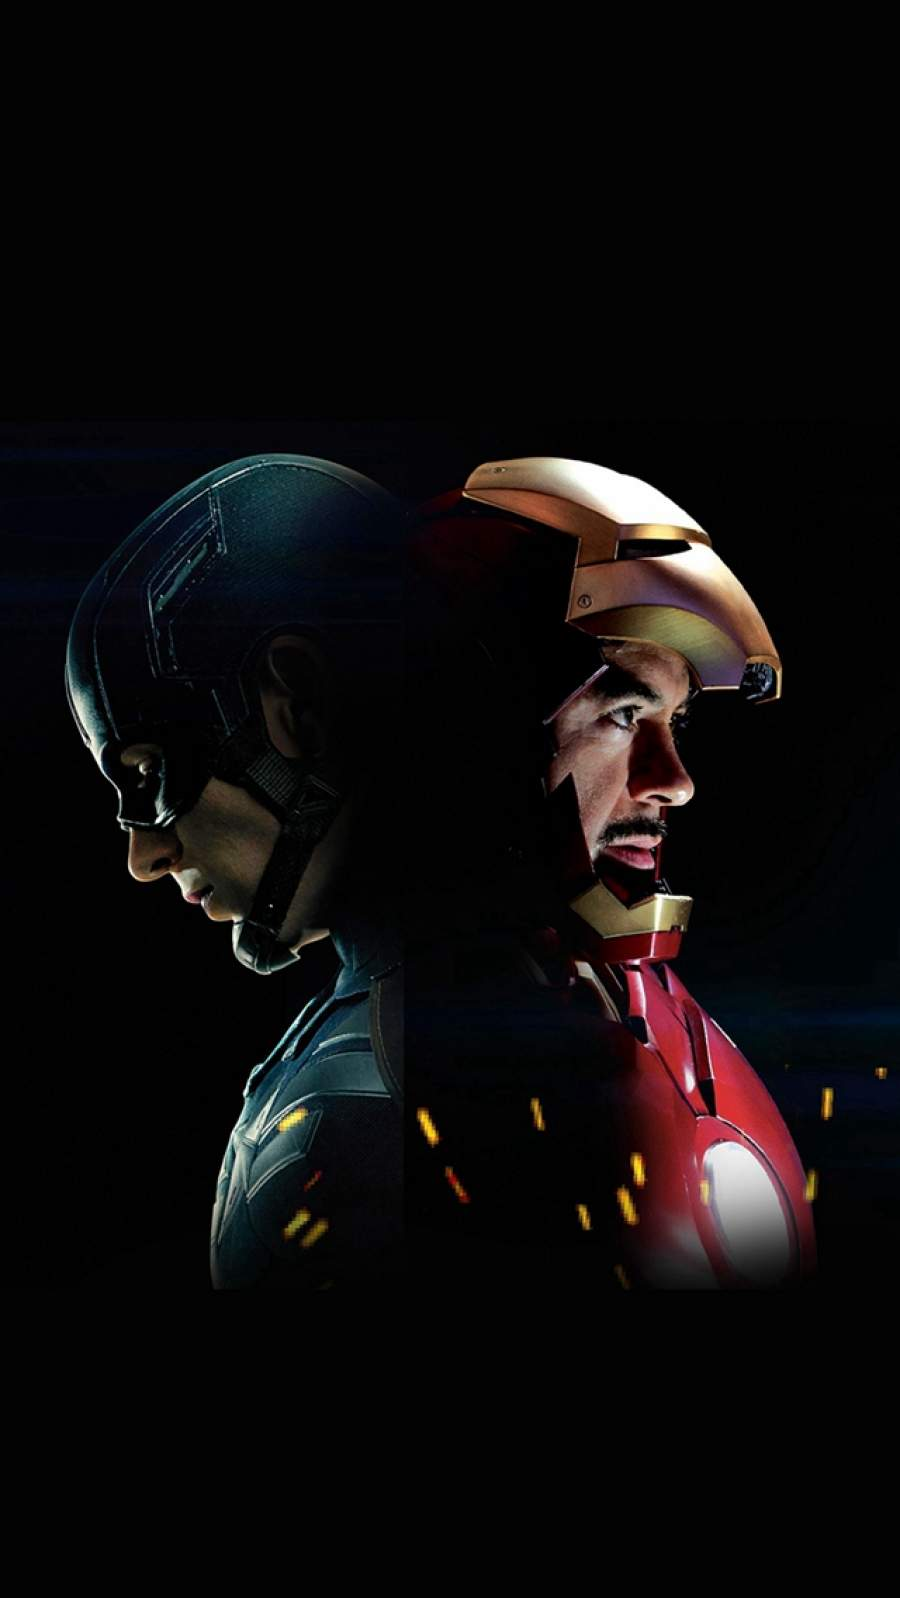 Captain America Ironman Hero Art iPhone Wallpaper